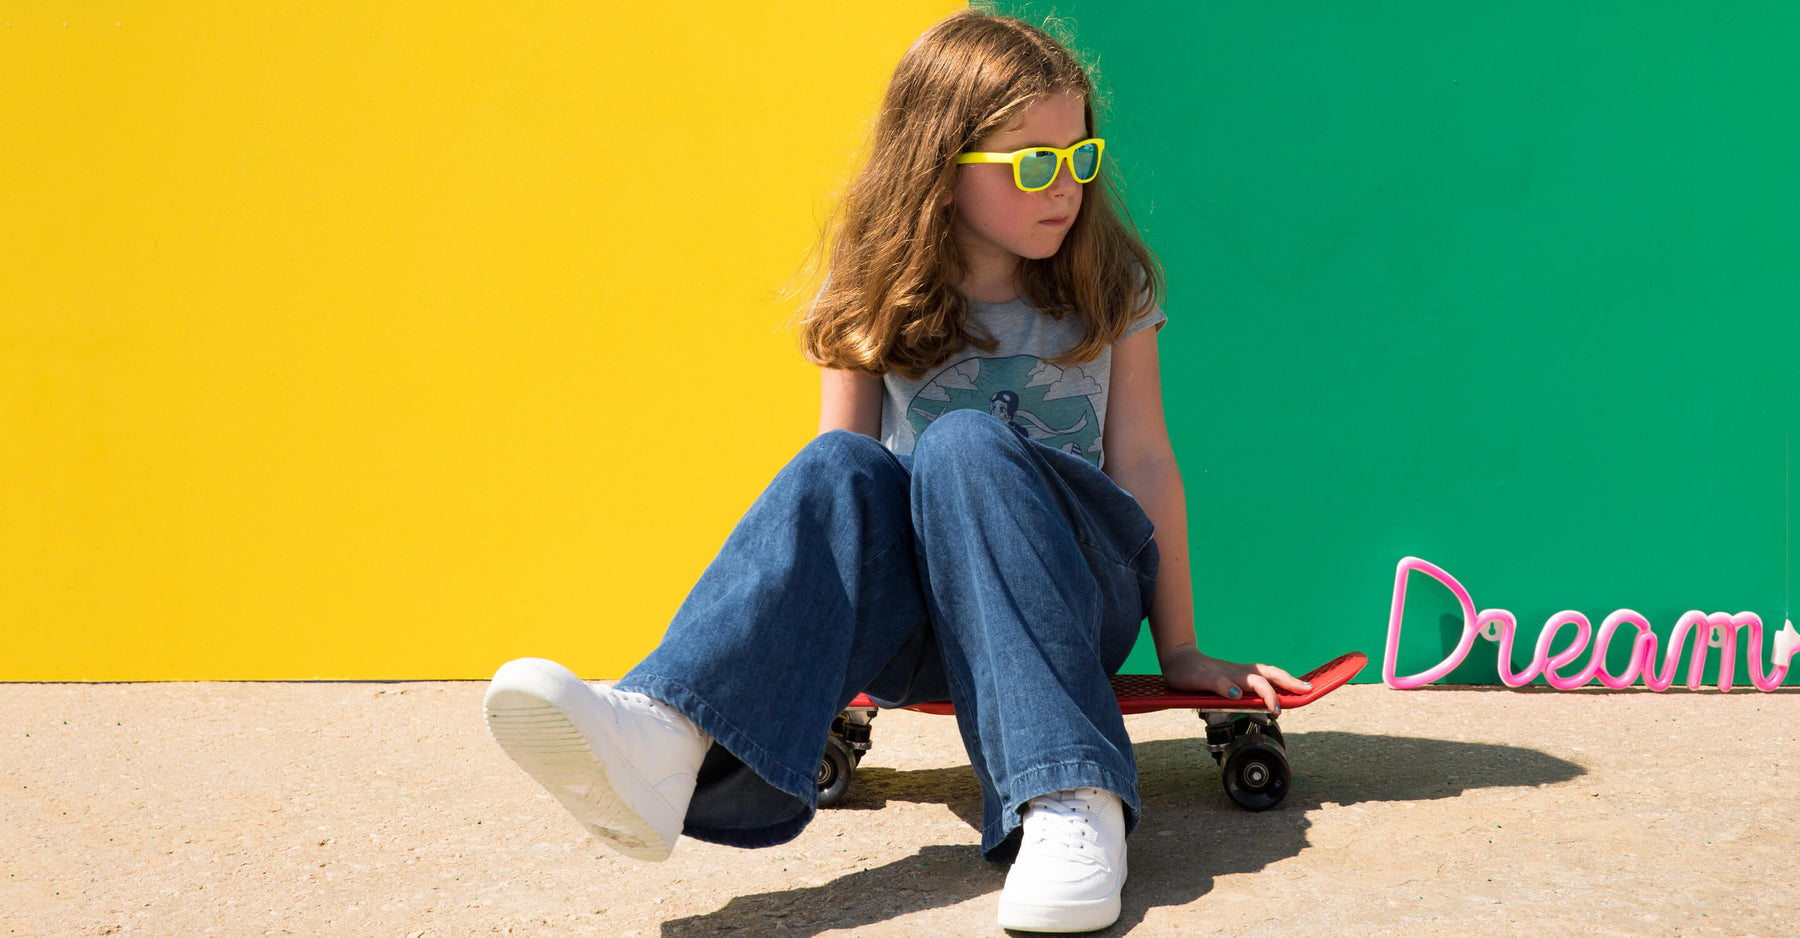 THE BRAND THAT EMPOWERS GIRLS AND SMASHES GENDER STEREOTYPES